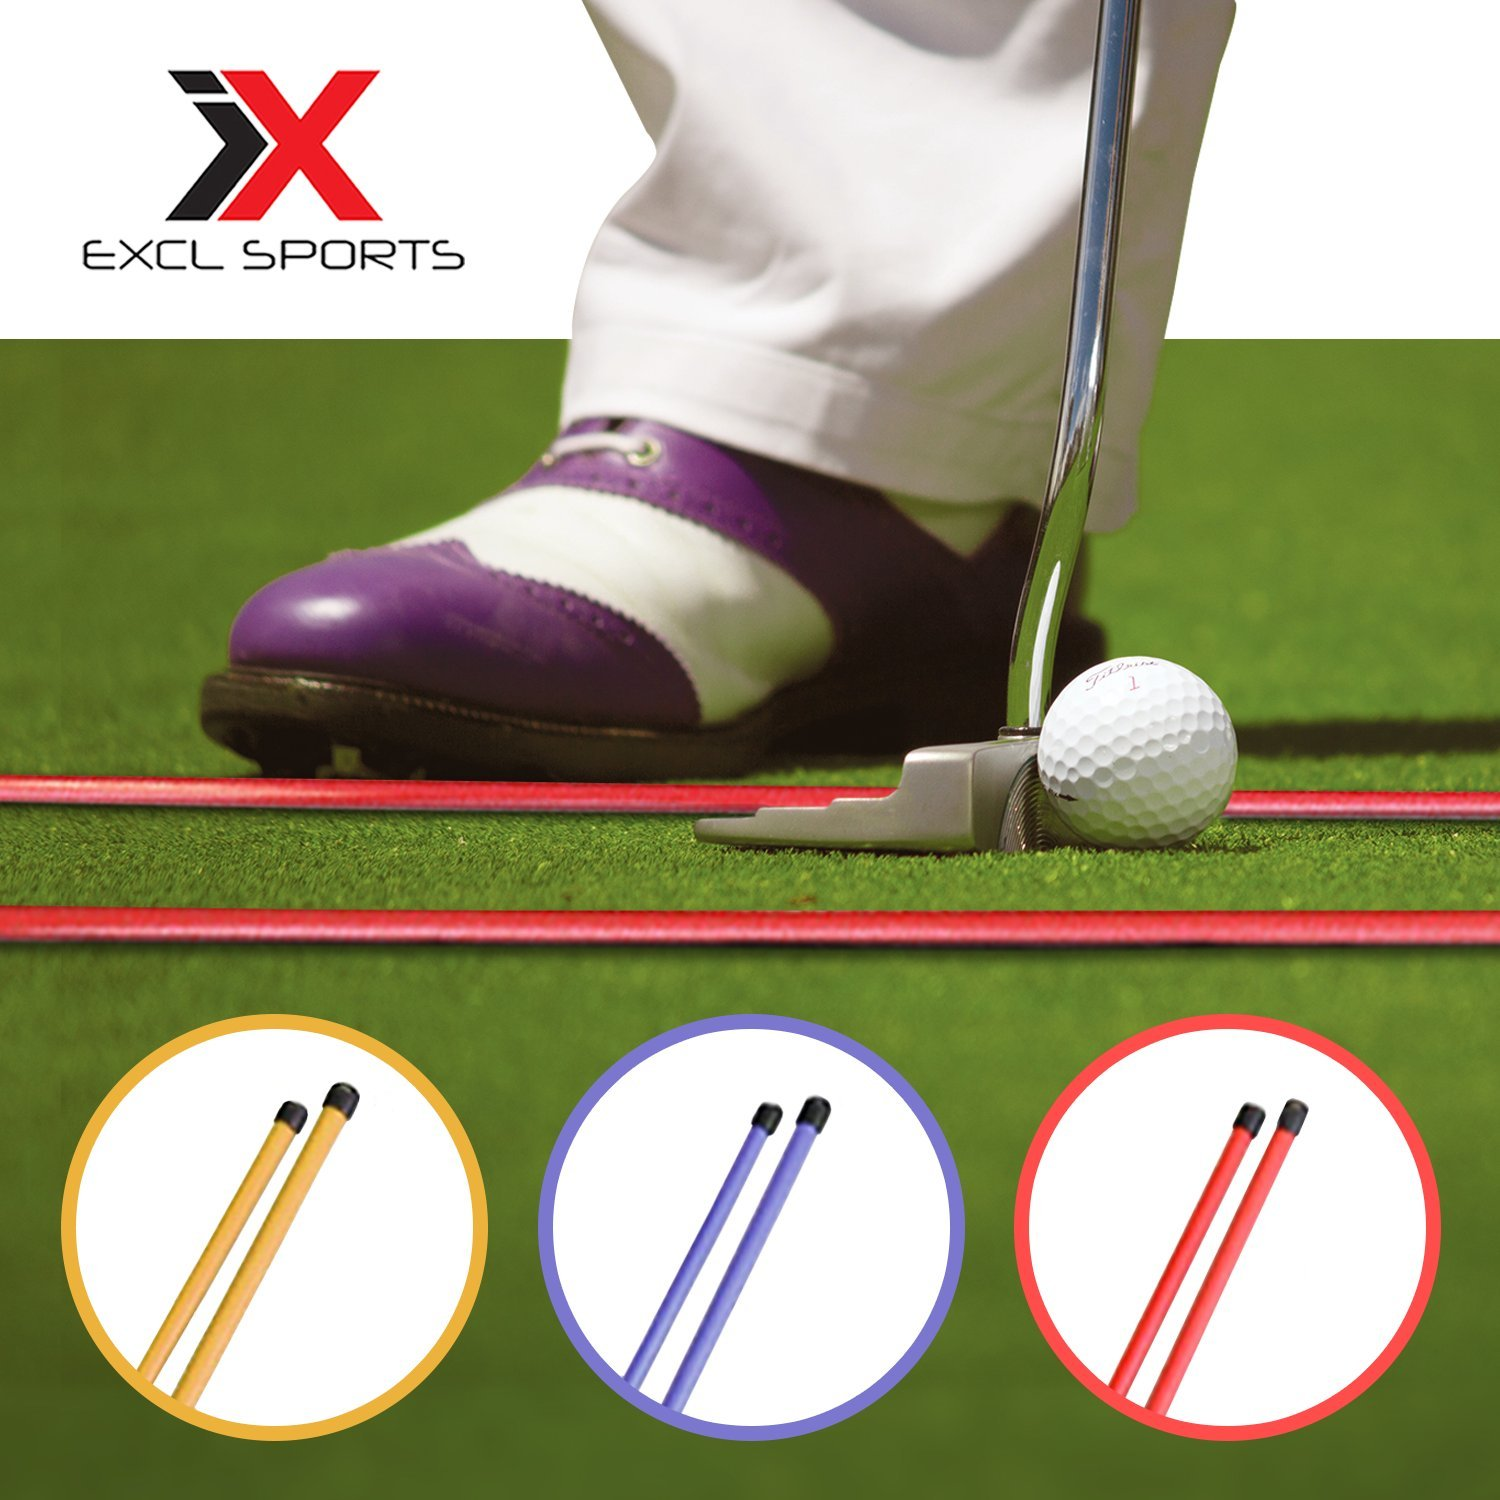 Amazon.com: excl Deportes Golf Alignment de incienso, lote ...